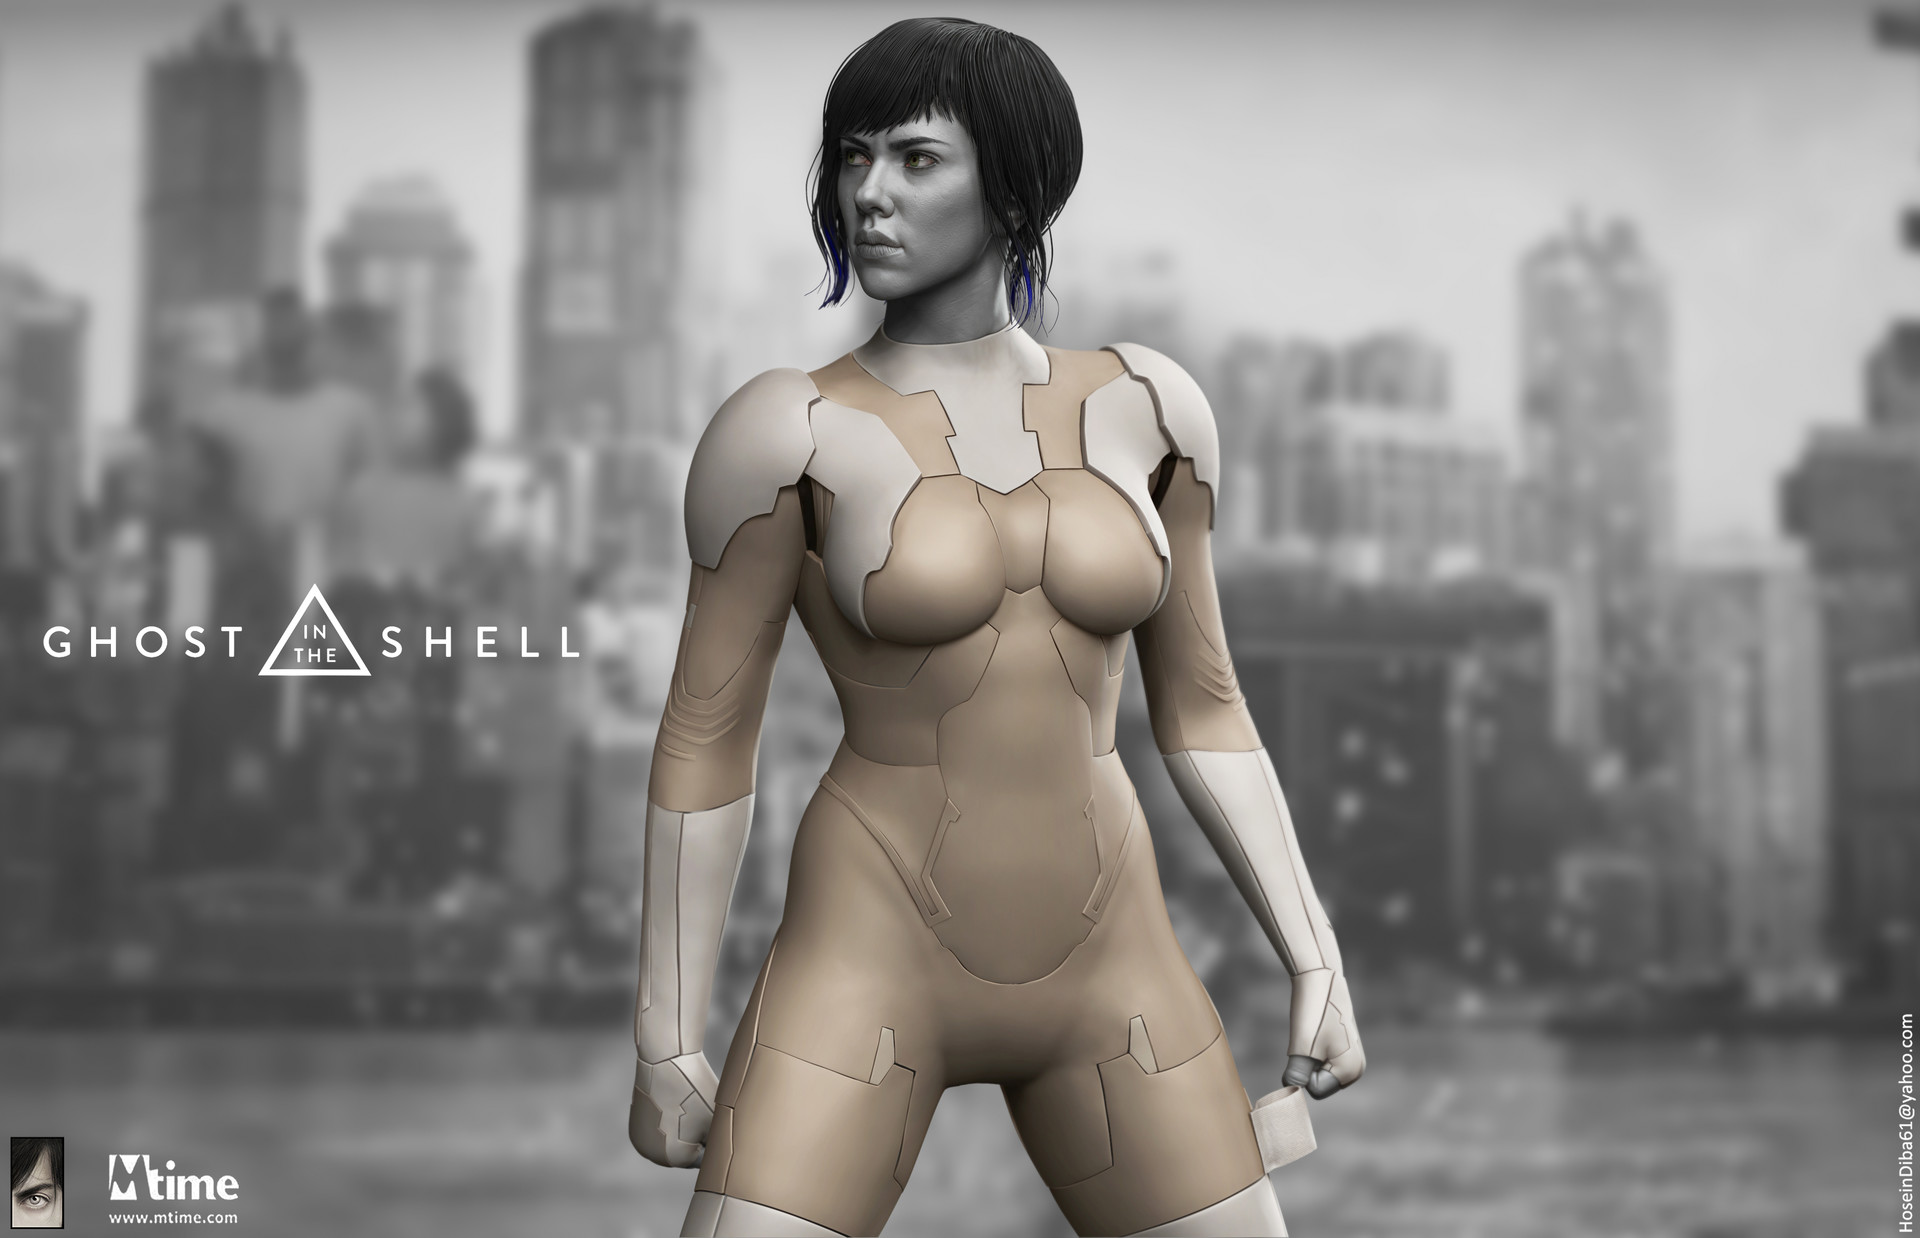 Artstation Ghost In The Shell The Major 1 6th Collectible Statue Mtime Hossein Diba